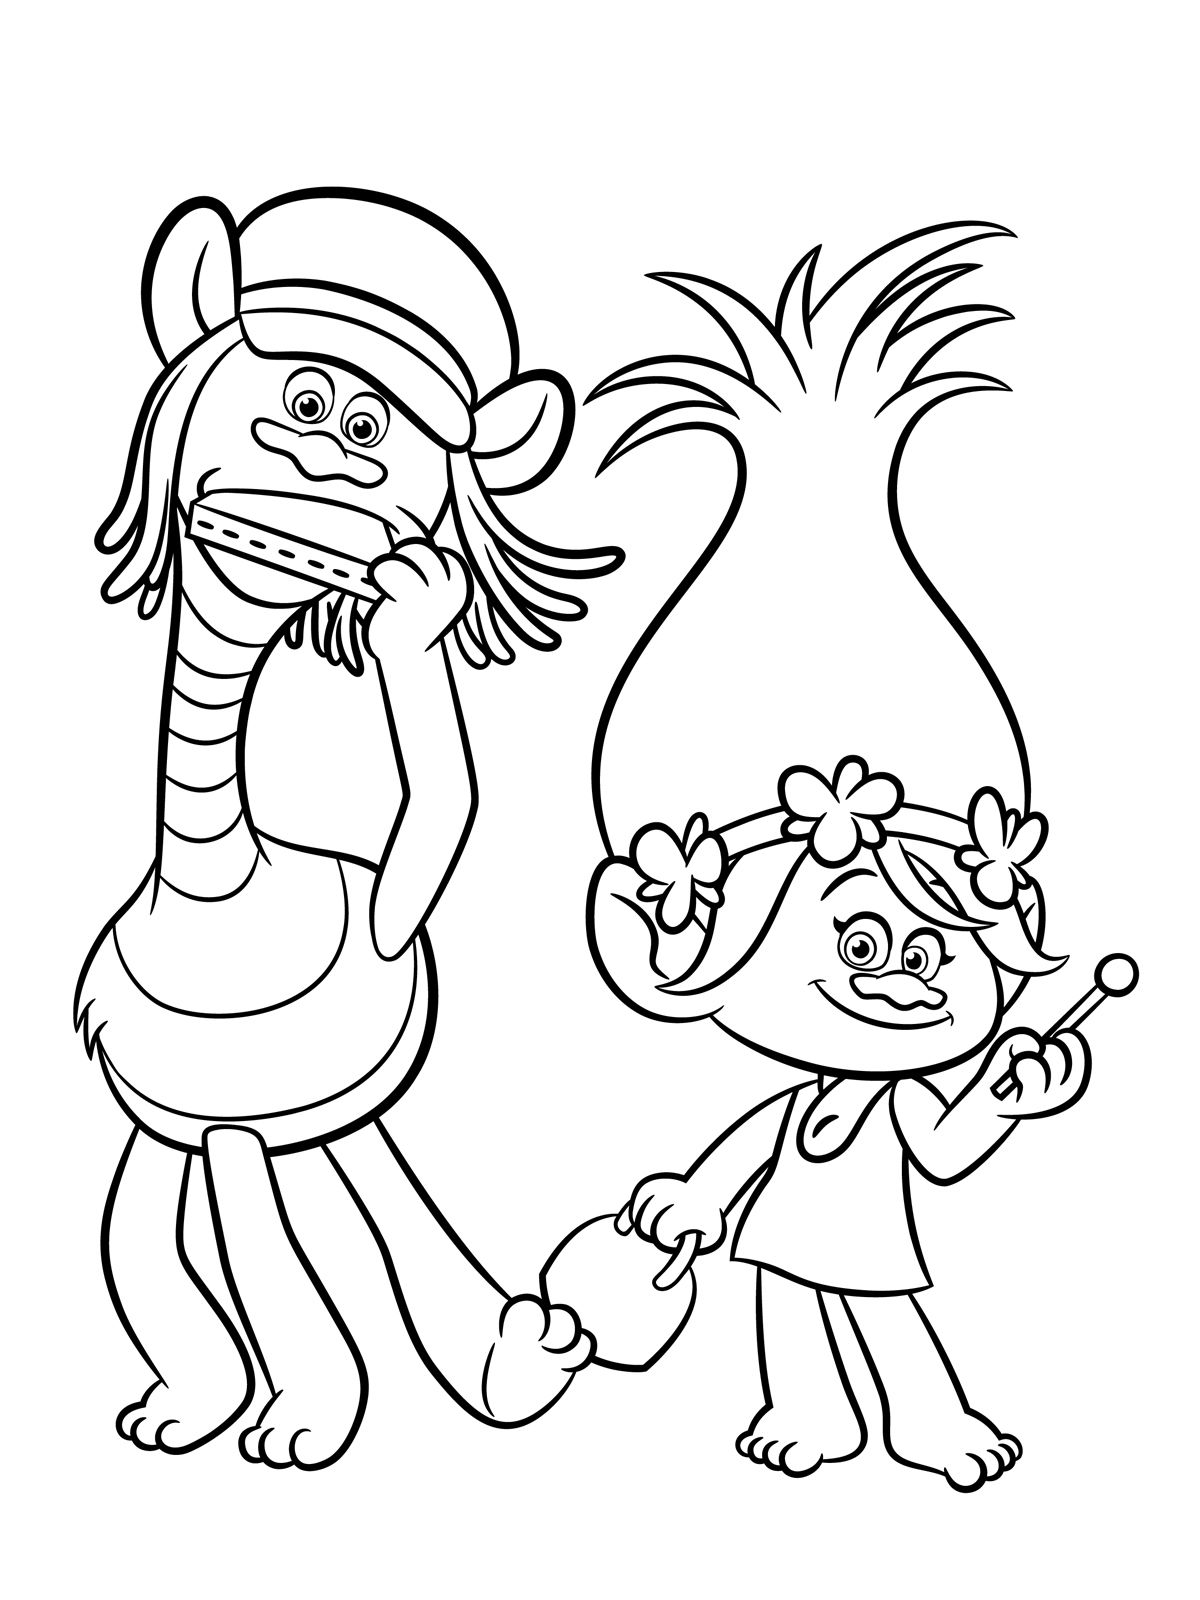 disney free colouring pages disney coloring pages disney free colouring pages